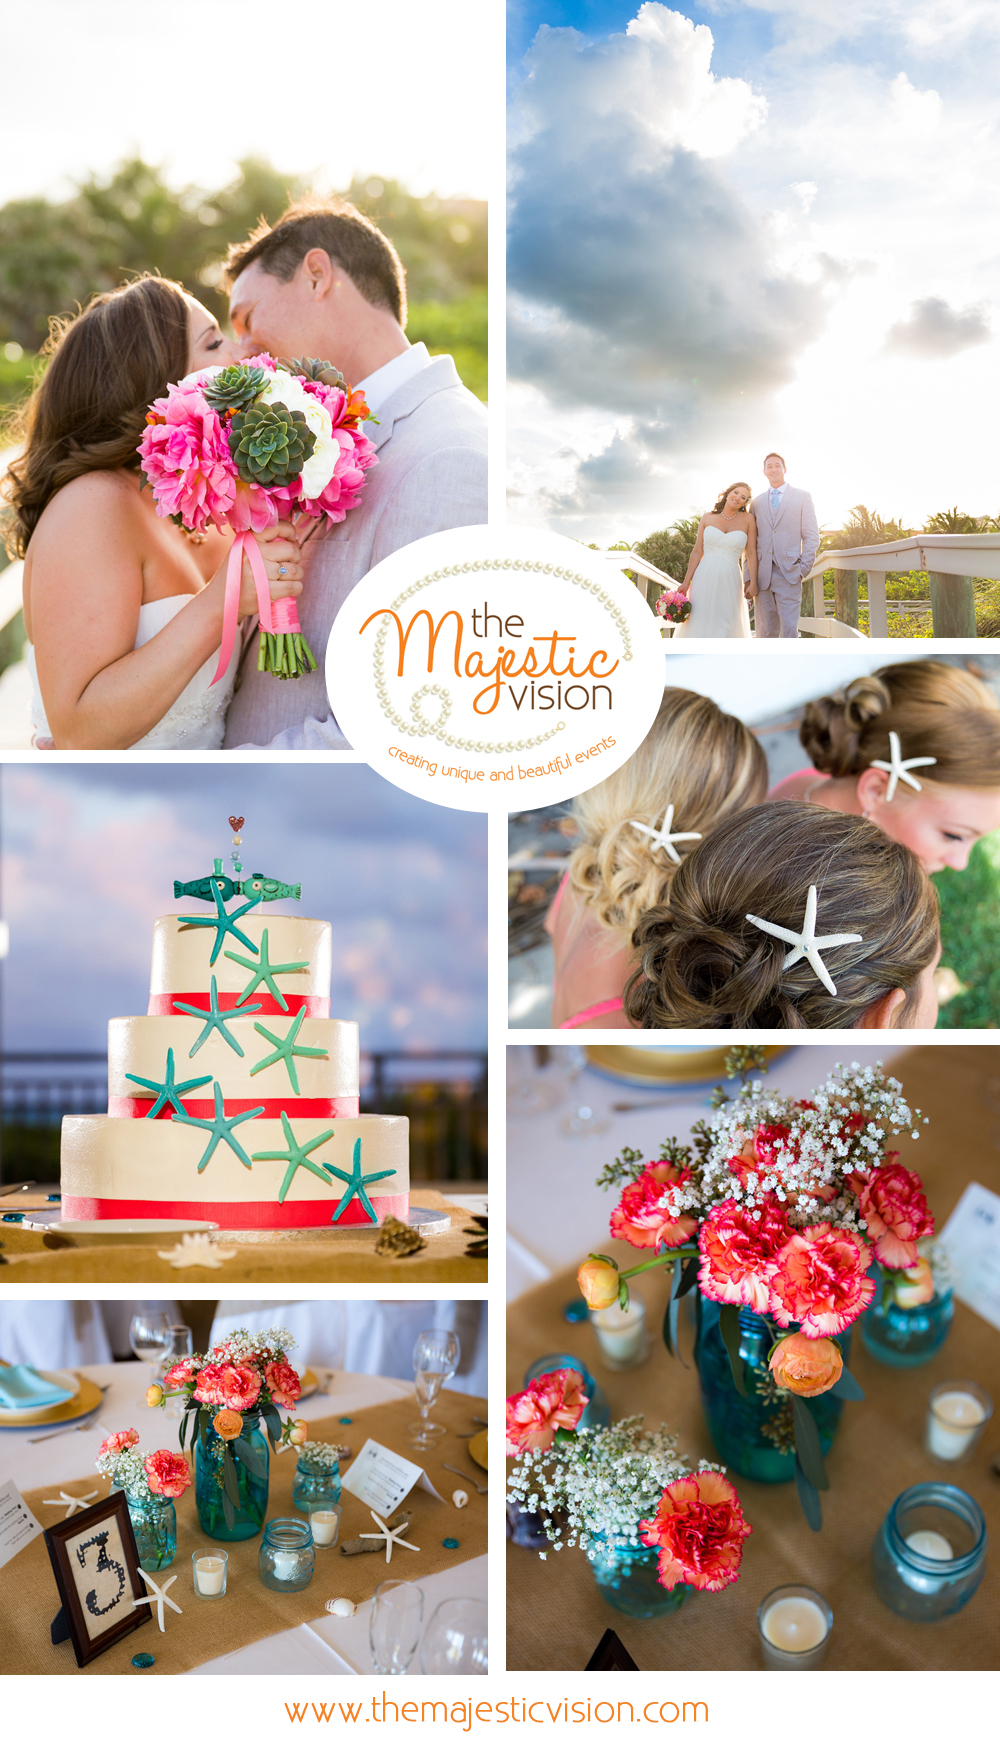 Rustic Coral and Burlap Beach Wedding | The Majestic Vision Wedding Planning | Palm Beach Shores Community Center in Palm Beach, FL | www.themajesticvision.com | Chris Kruger Photography